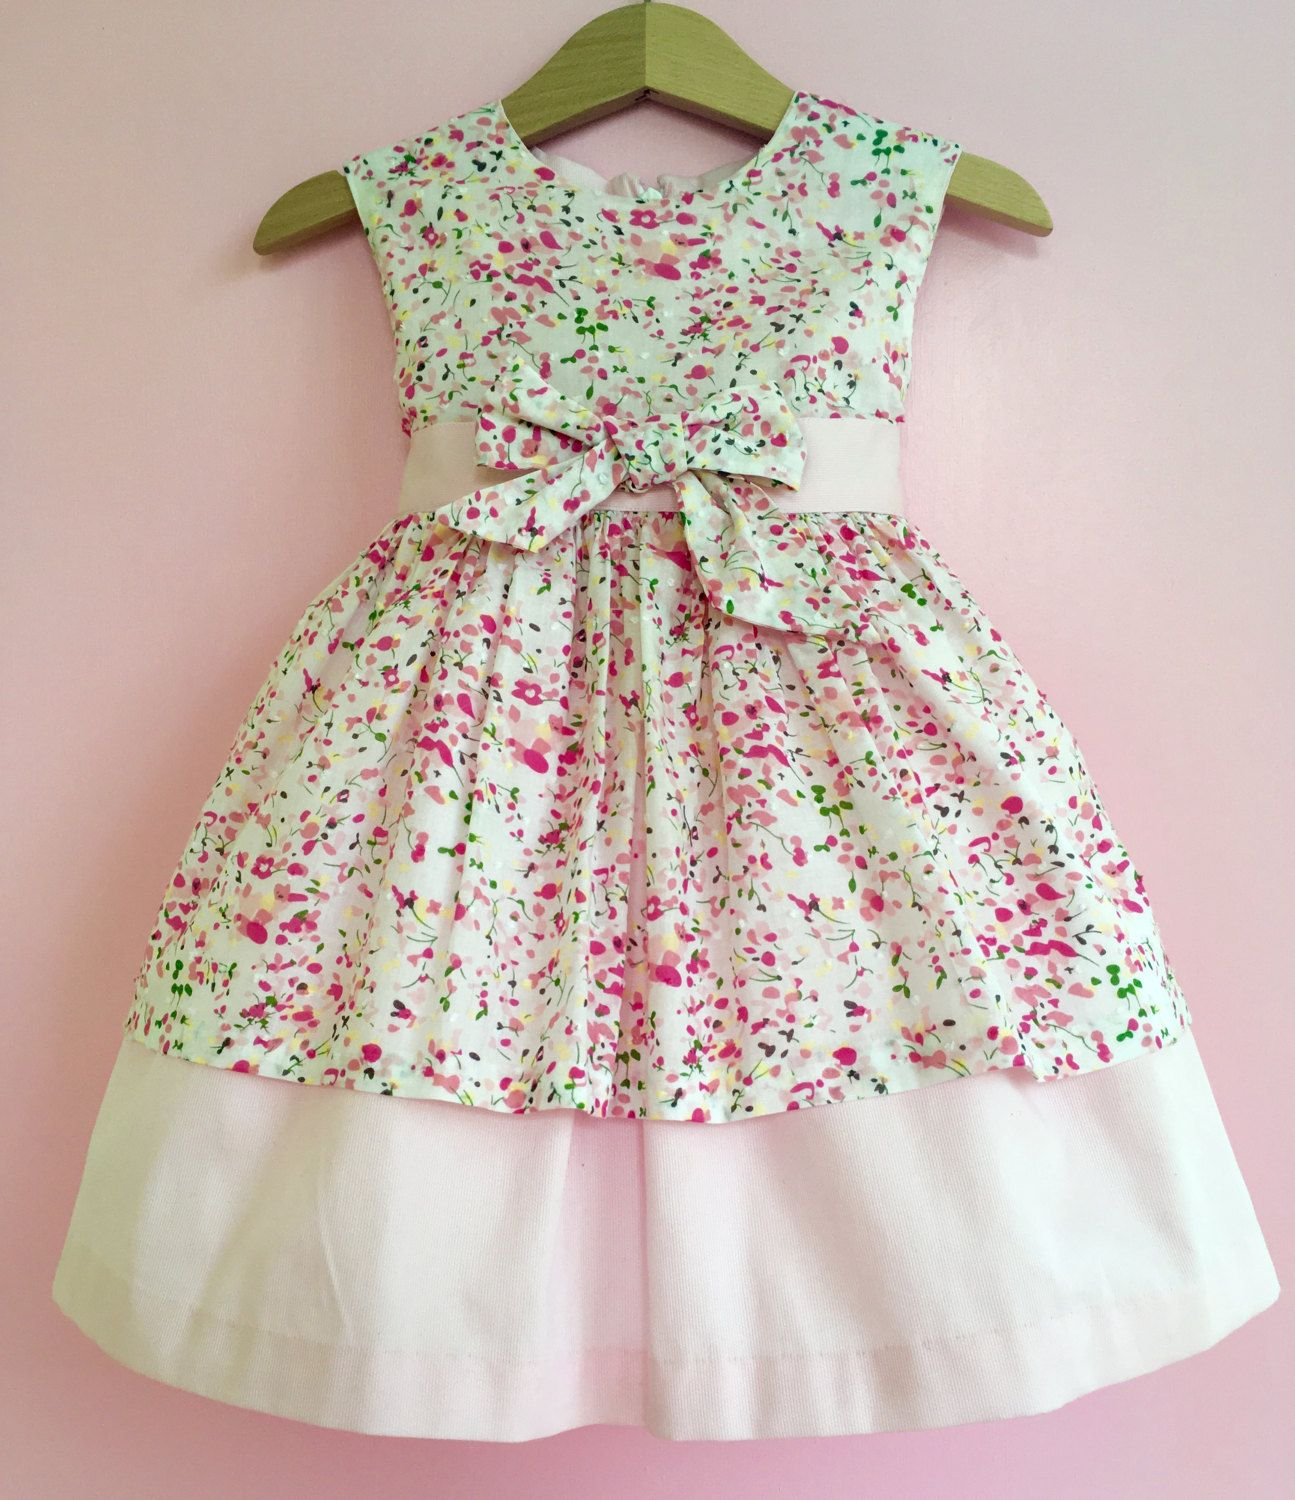 pink floral party dress designer baby dress handmade in